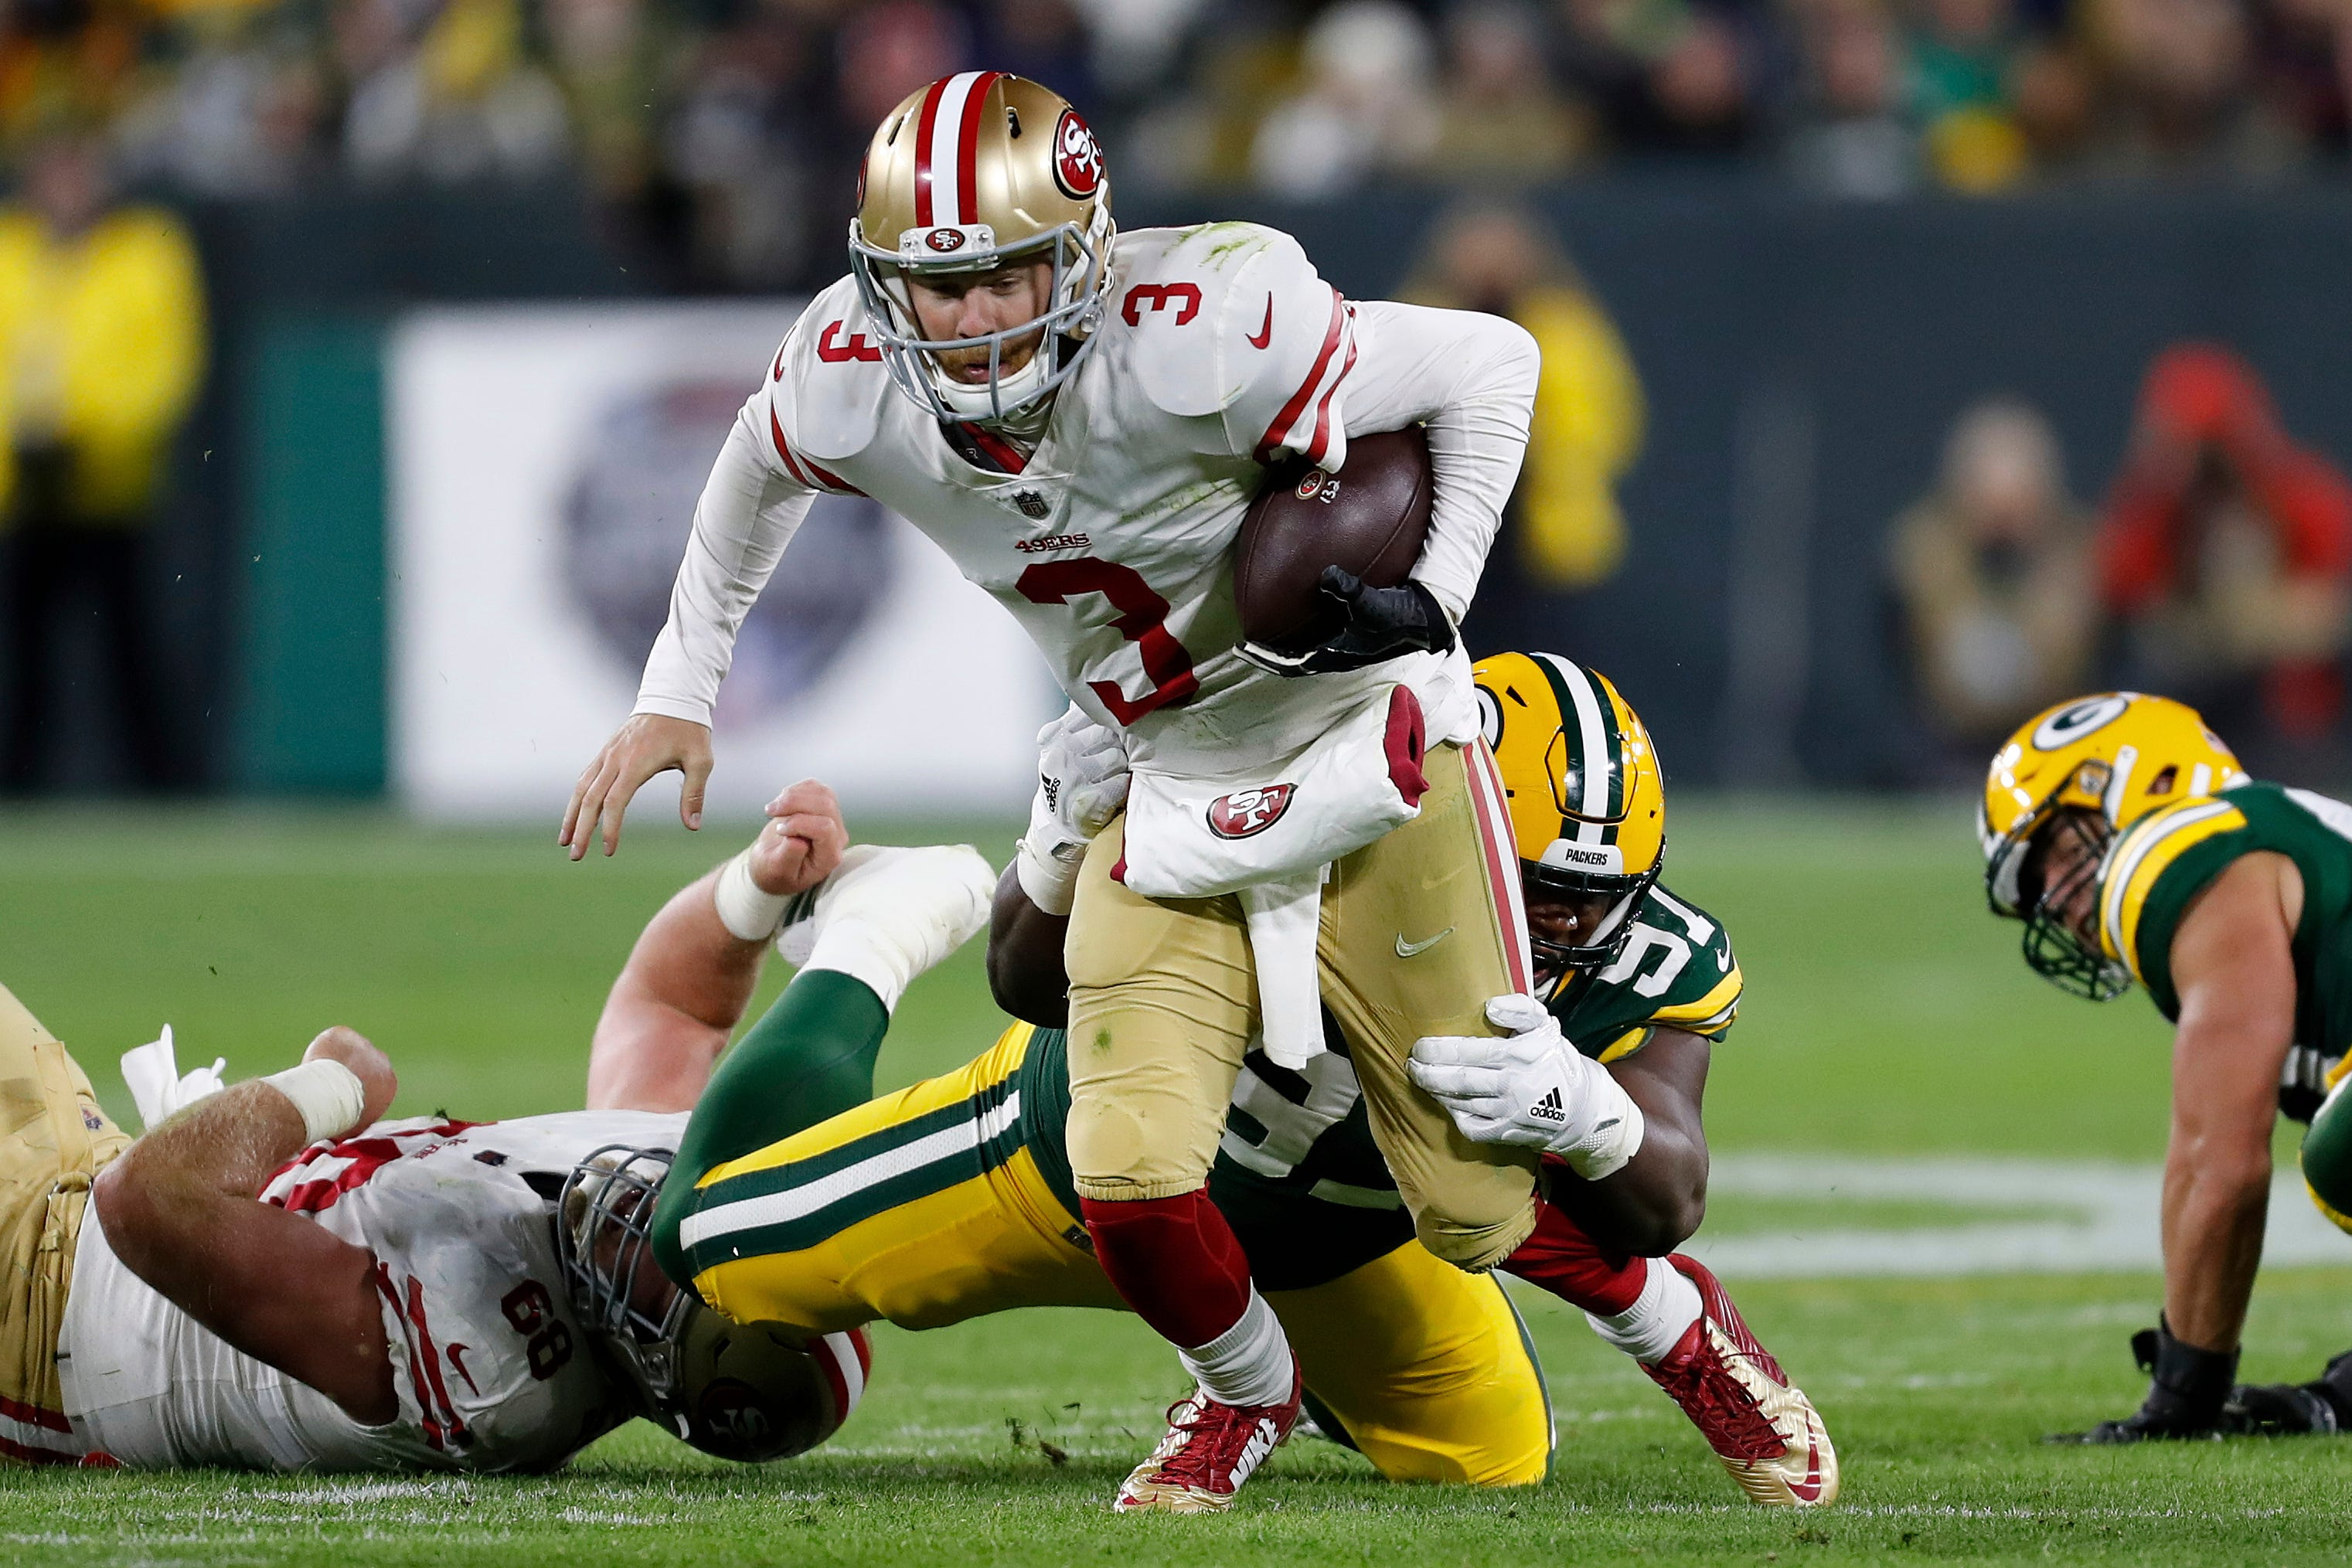 49ers have little time to dwell on Packers loss with LA next